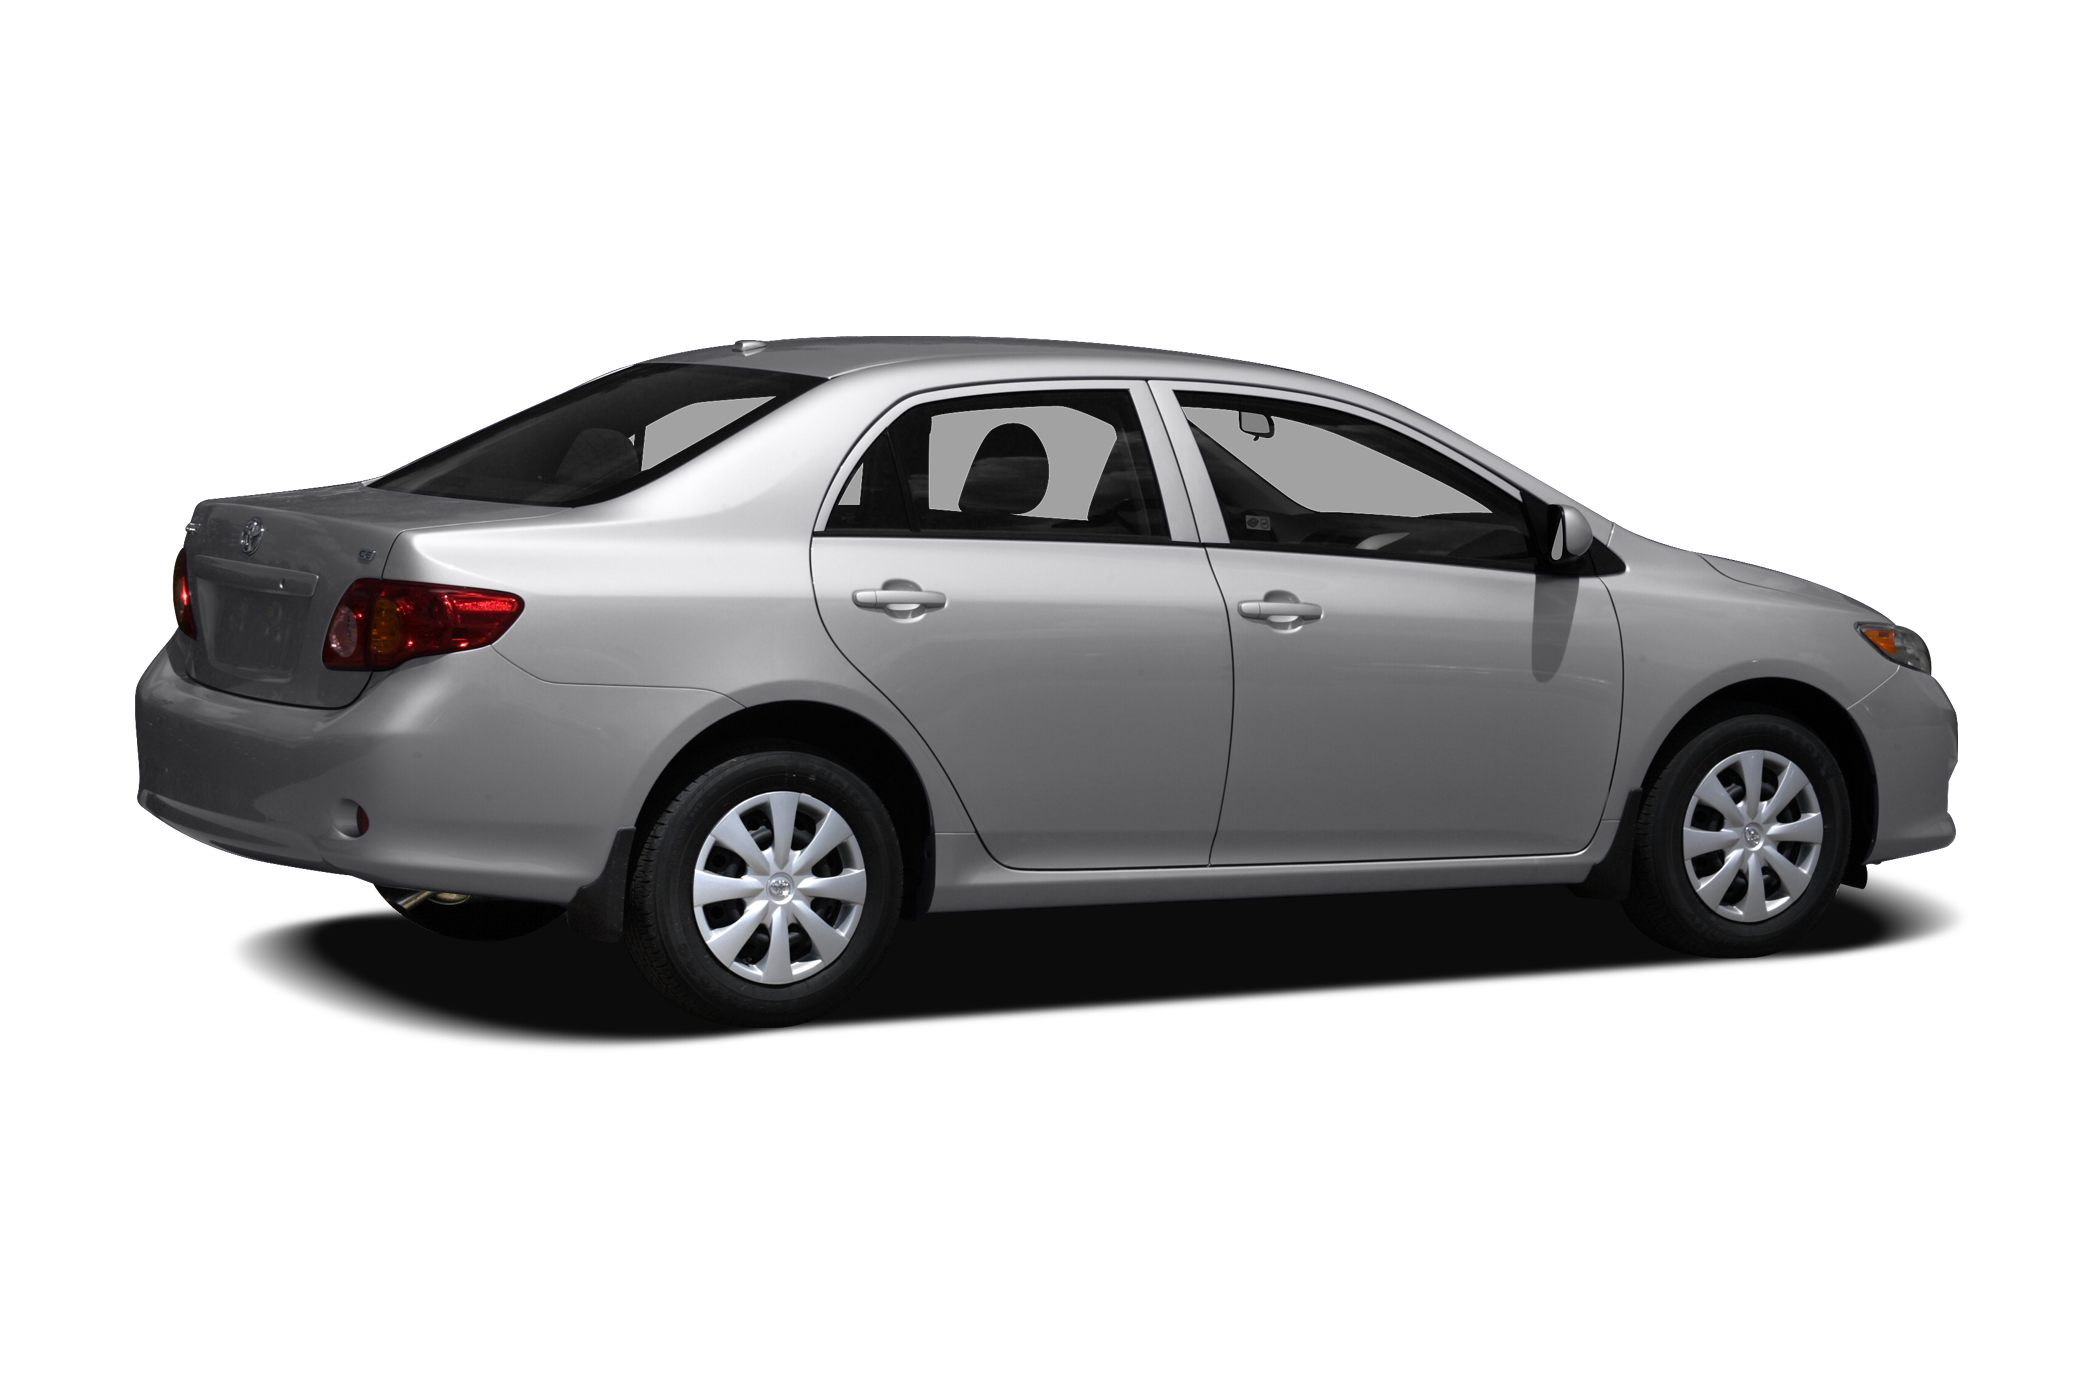 2010 Toyota Corolla LE Vehicle Options ABS Brakes Front Side Airbag Telescopic Steering Column Air